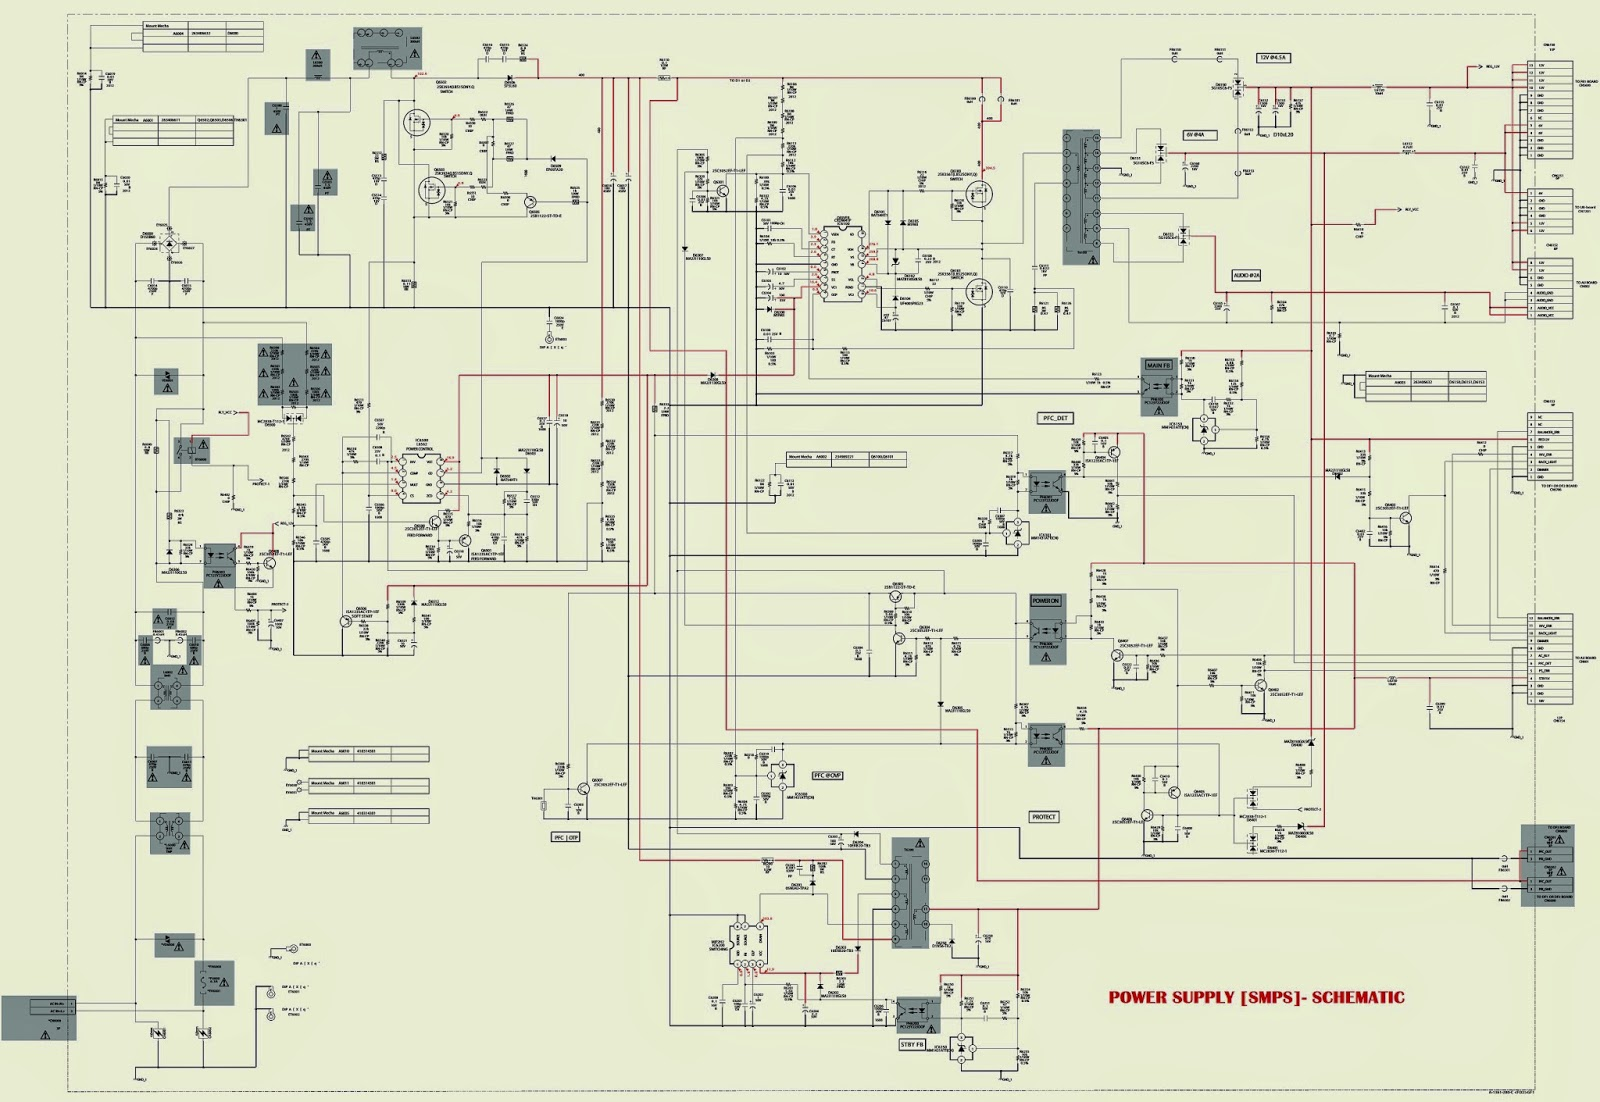 Toshiba 32dt2u1 Power Supply Or Mainboard Issue Badcaps Asus Vw223 Lcd Monitor And Inverter Schematic Tv Circuit Board Diagram Free Engine